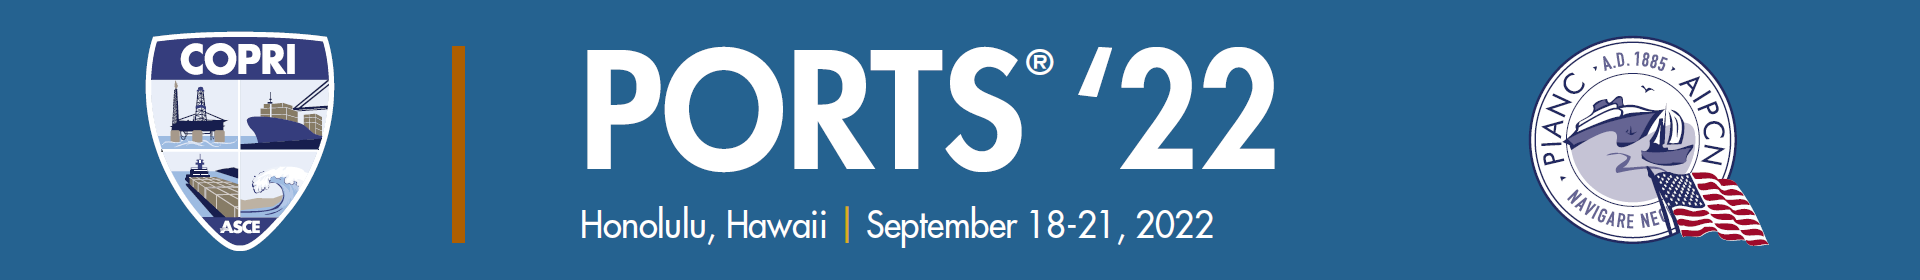 PORTS® '22 Event Banner